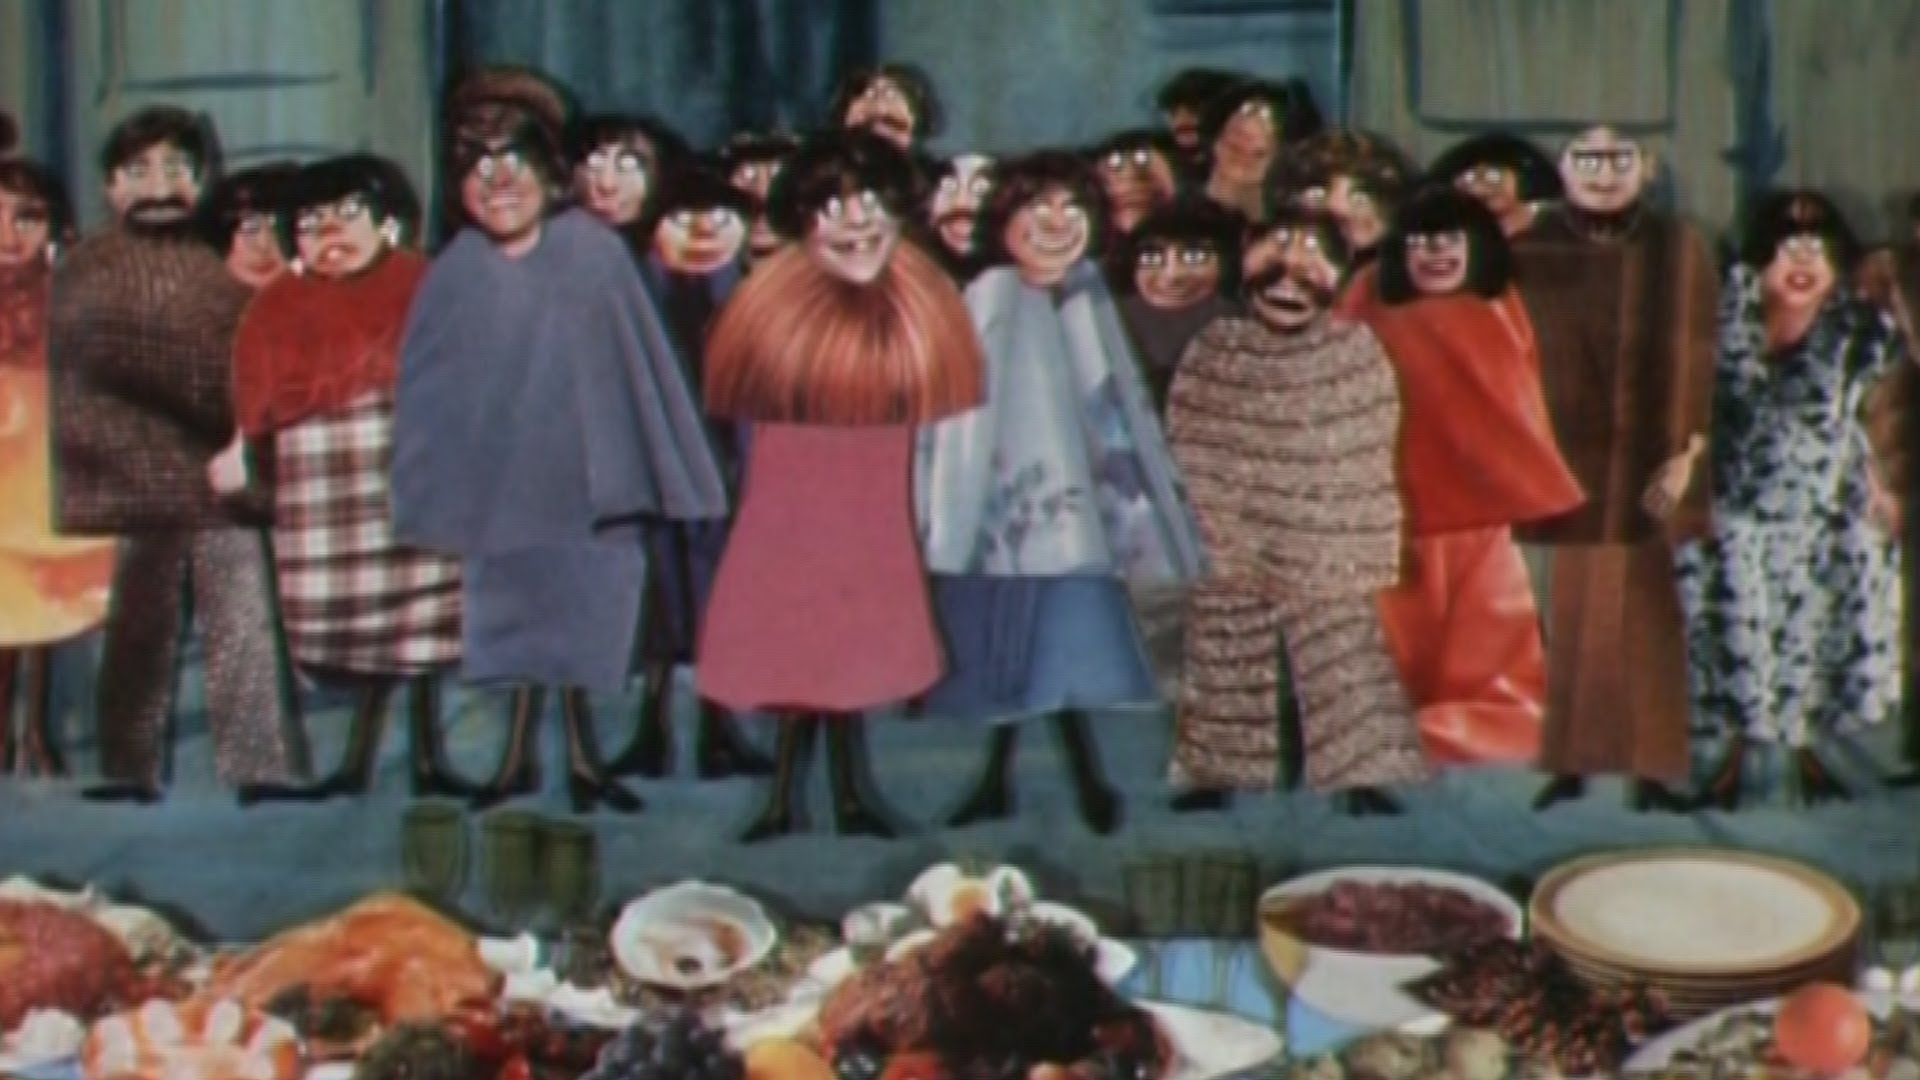 Brilliant Animation About A Banquet Animation Painting Film